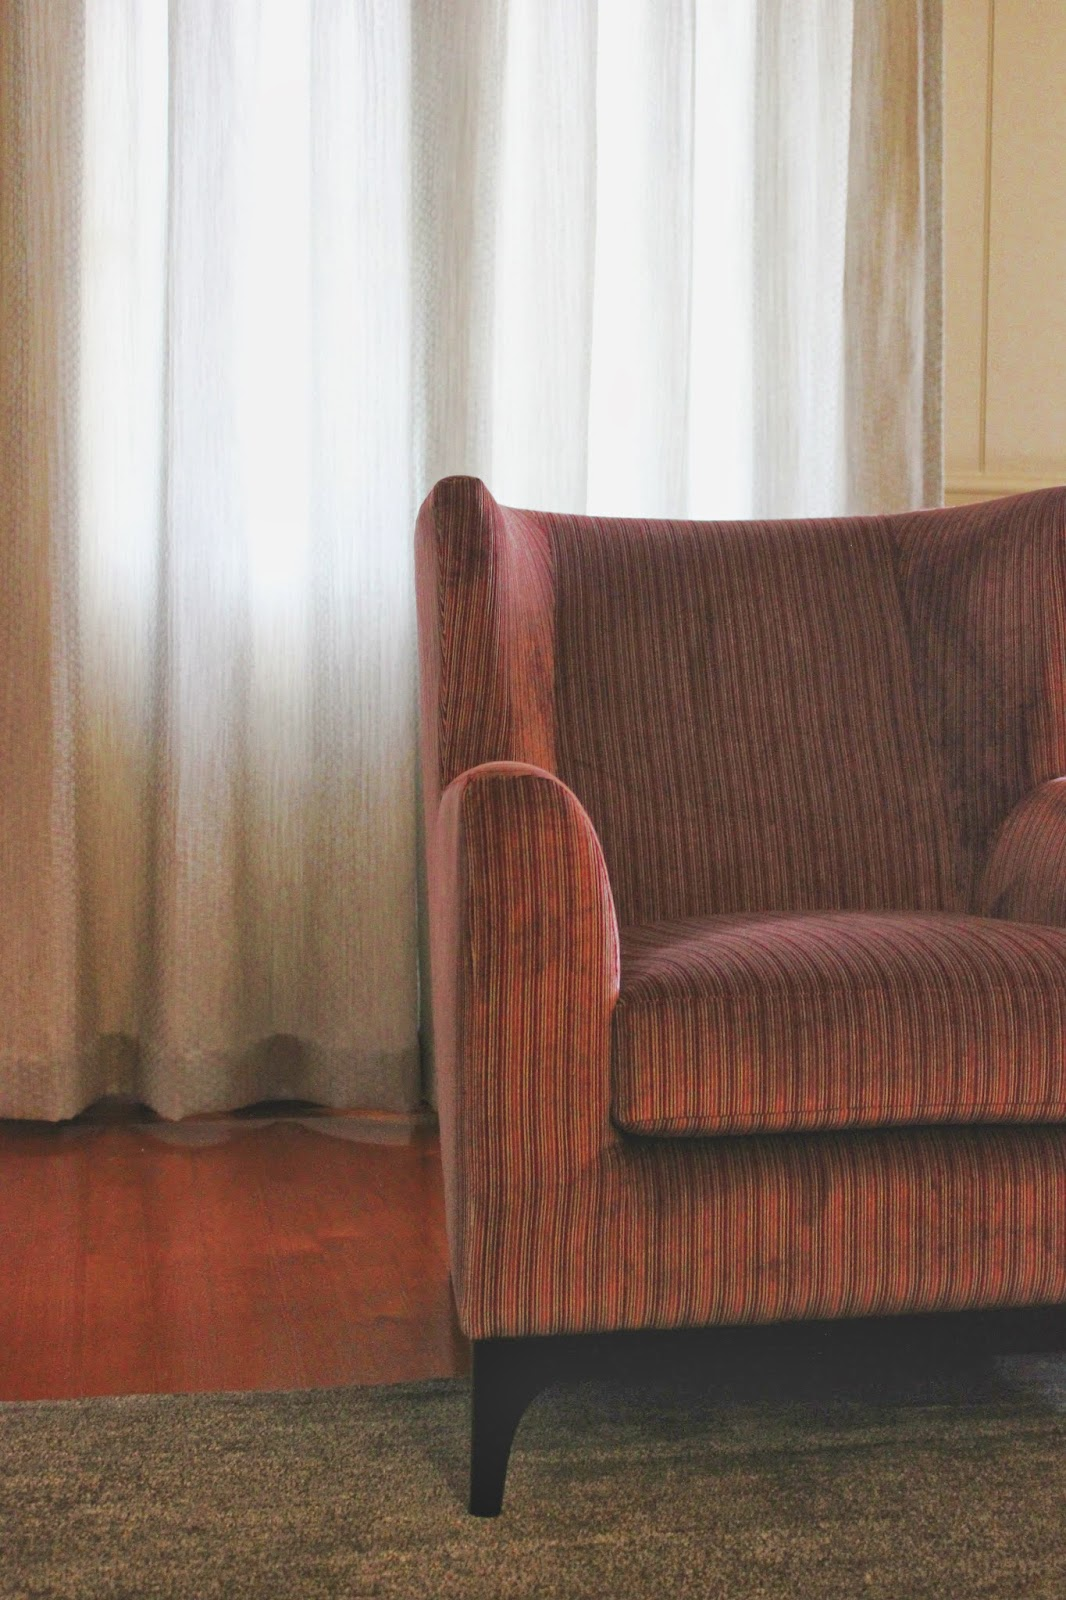 Curtains and blinds brisbane, curtains and blinds fortitude valley, Luxury curtains and drapes brisbane